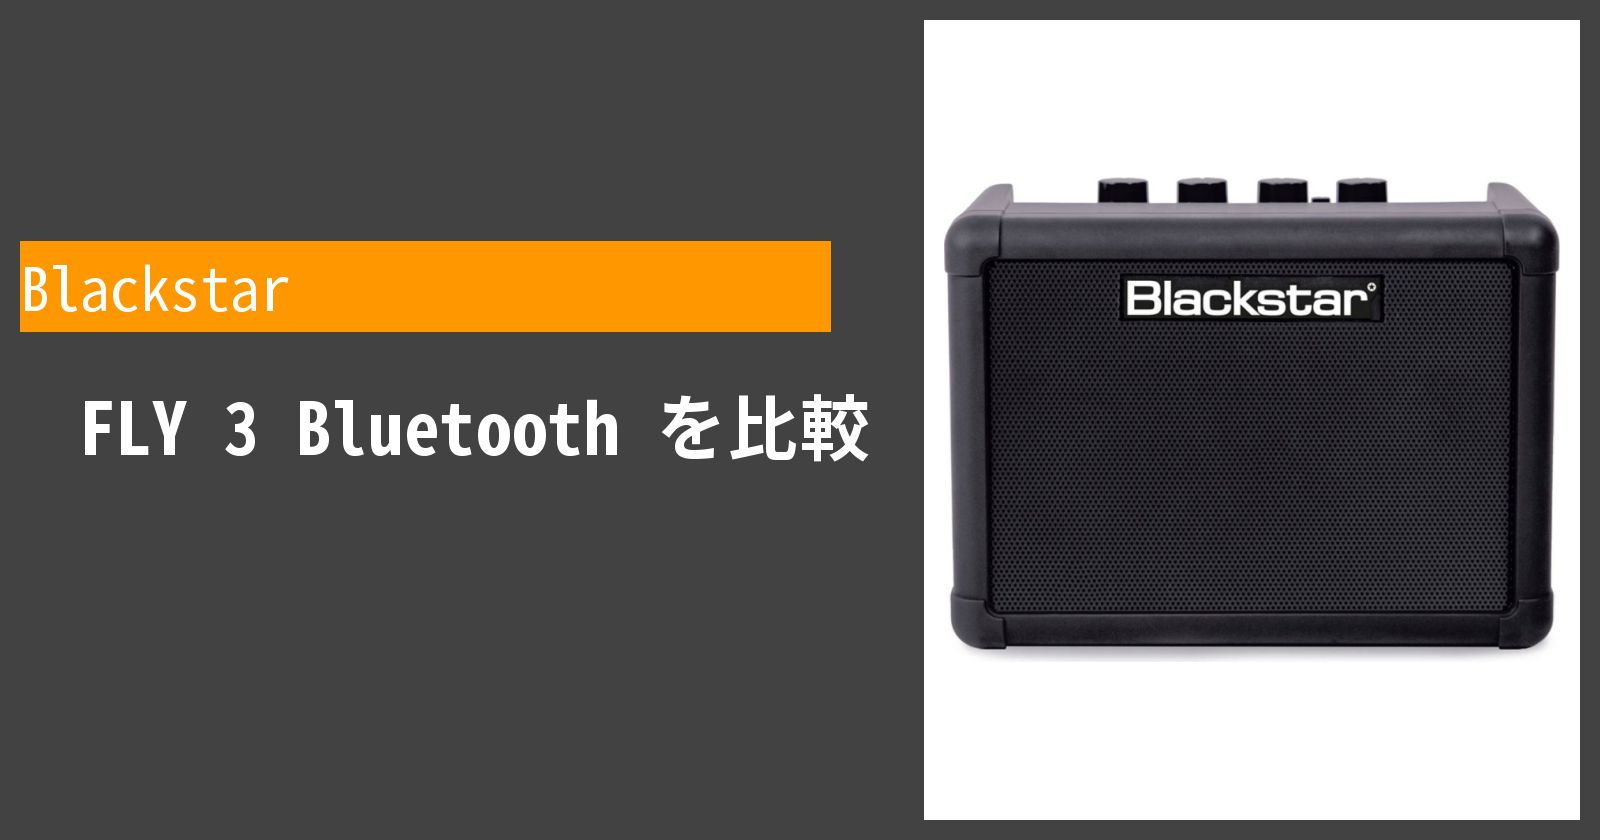 FLY 3 Bluetoothを徹底評価